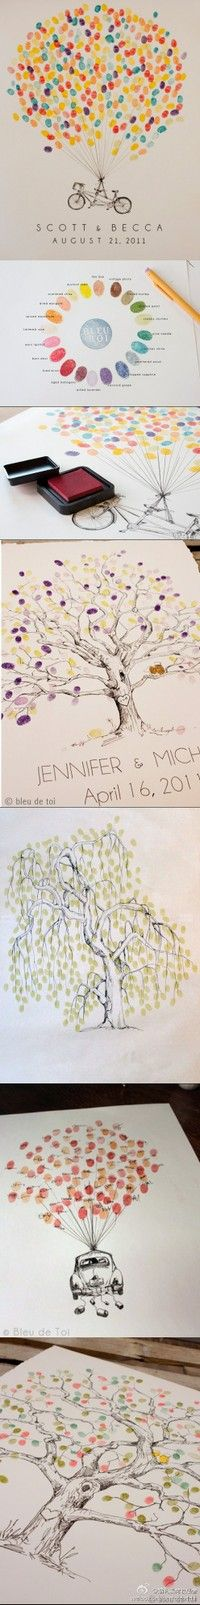 Cutest Idea in lieu of a Guest Book at Weddings! Wedding, Bridal, Bride & Groom, Special Day, Best, Noblesville, Hair, Salons, G Michael Salon, Noblesville Hair Salons, Celebrity, HAIR, Beauty, Haircuts, Top, Carmel, Indiana, Indy, Indiana, Top, Waxing, Brazilian Keratin, Best Hair Extensions, J Beverly Hills, Hairstyling, Hair Stylist, Hairstylist, Hairstylists, Indianapolis, BEST, Schwarzkopf, Hair Color, Vidal Sassoon, Aveda Trained, g.michael.salon, Fishers, Nobesville, Zionsville, IN